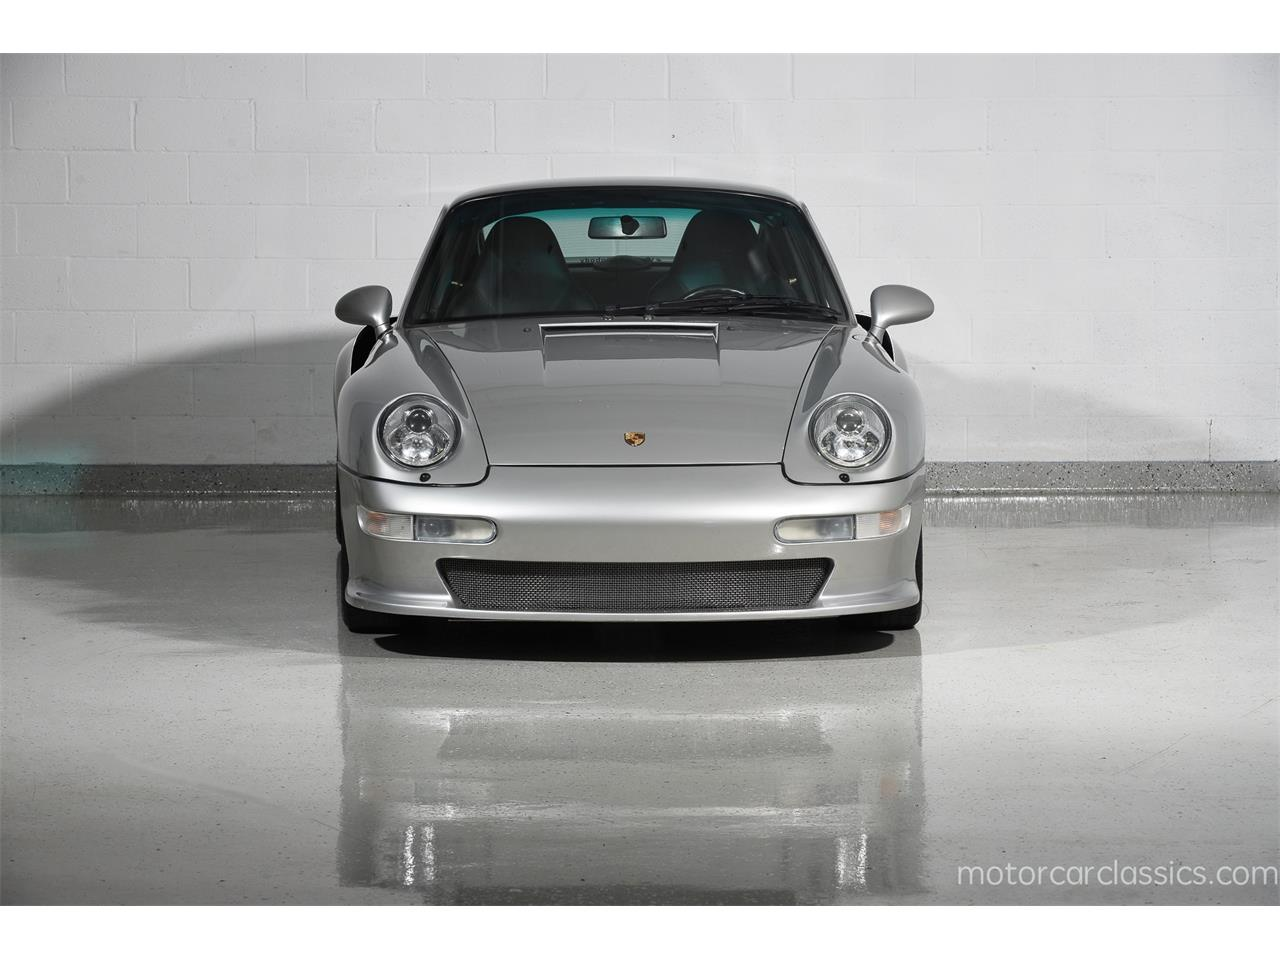 Large Picture of 1996 Porsche 911 Turbo - $69,900.00 Offered by Motorcar Classics - MBOA